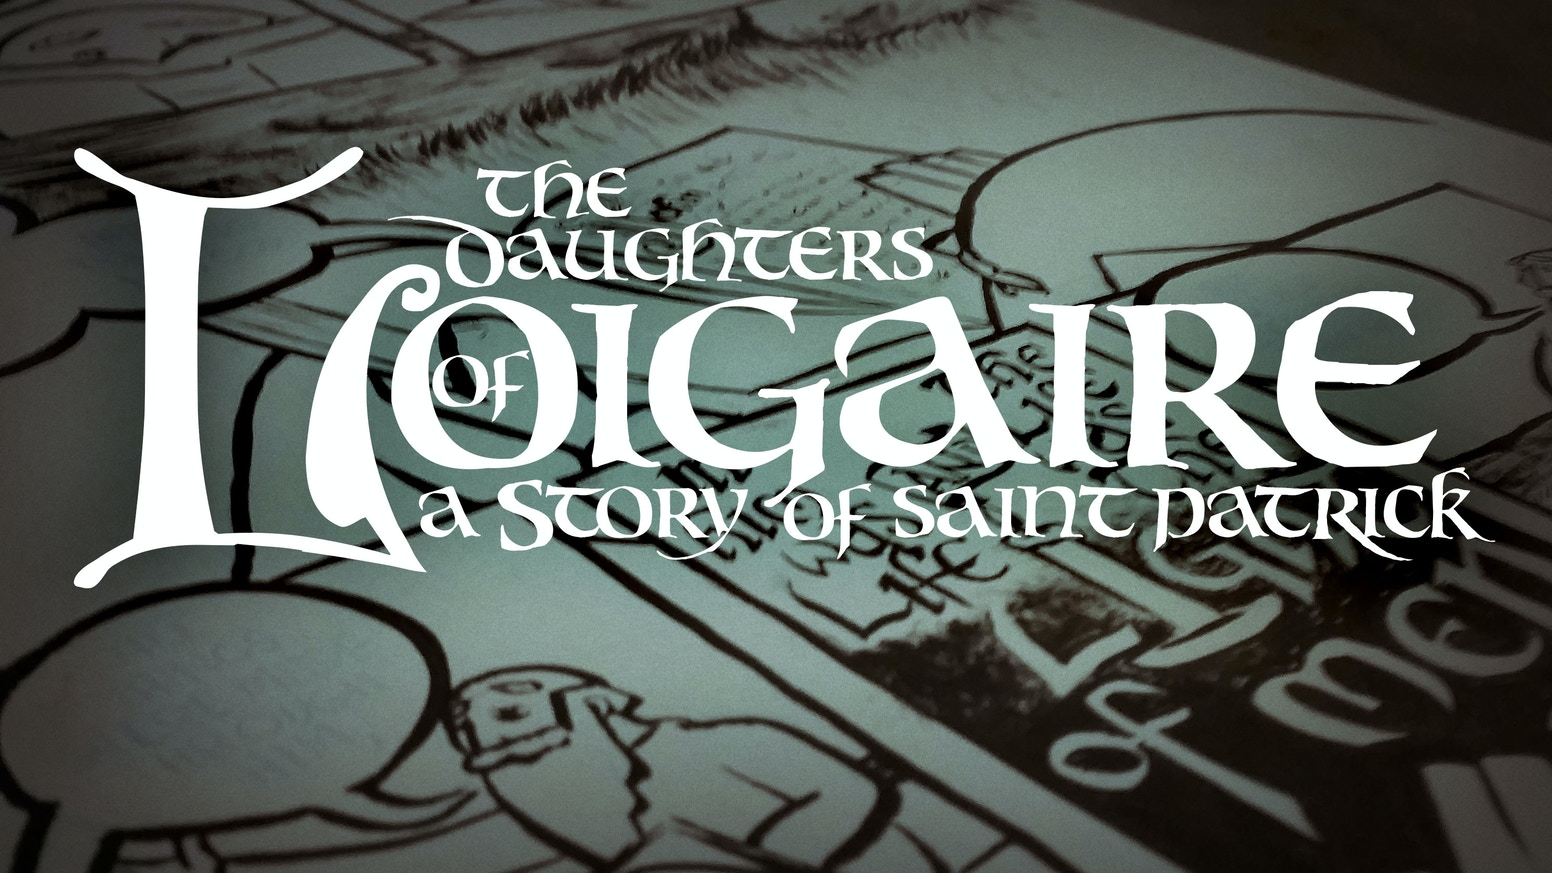 One part art, one part history, one part divine, one part human. A story from the life of St. Patrick as a calligraphic literary comic.